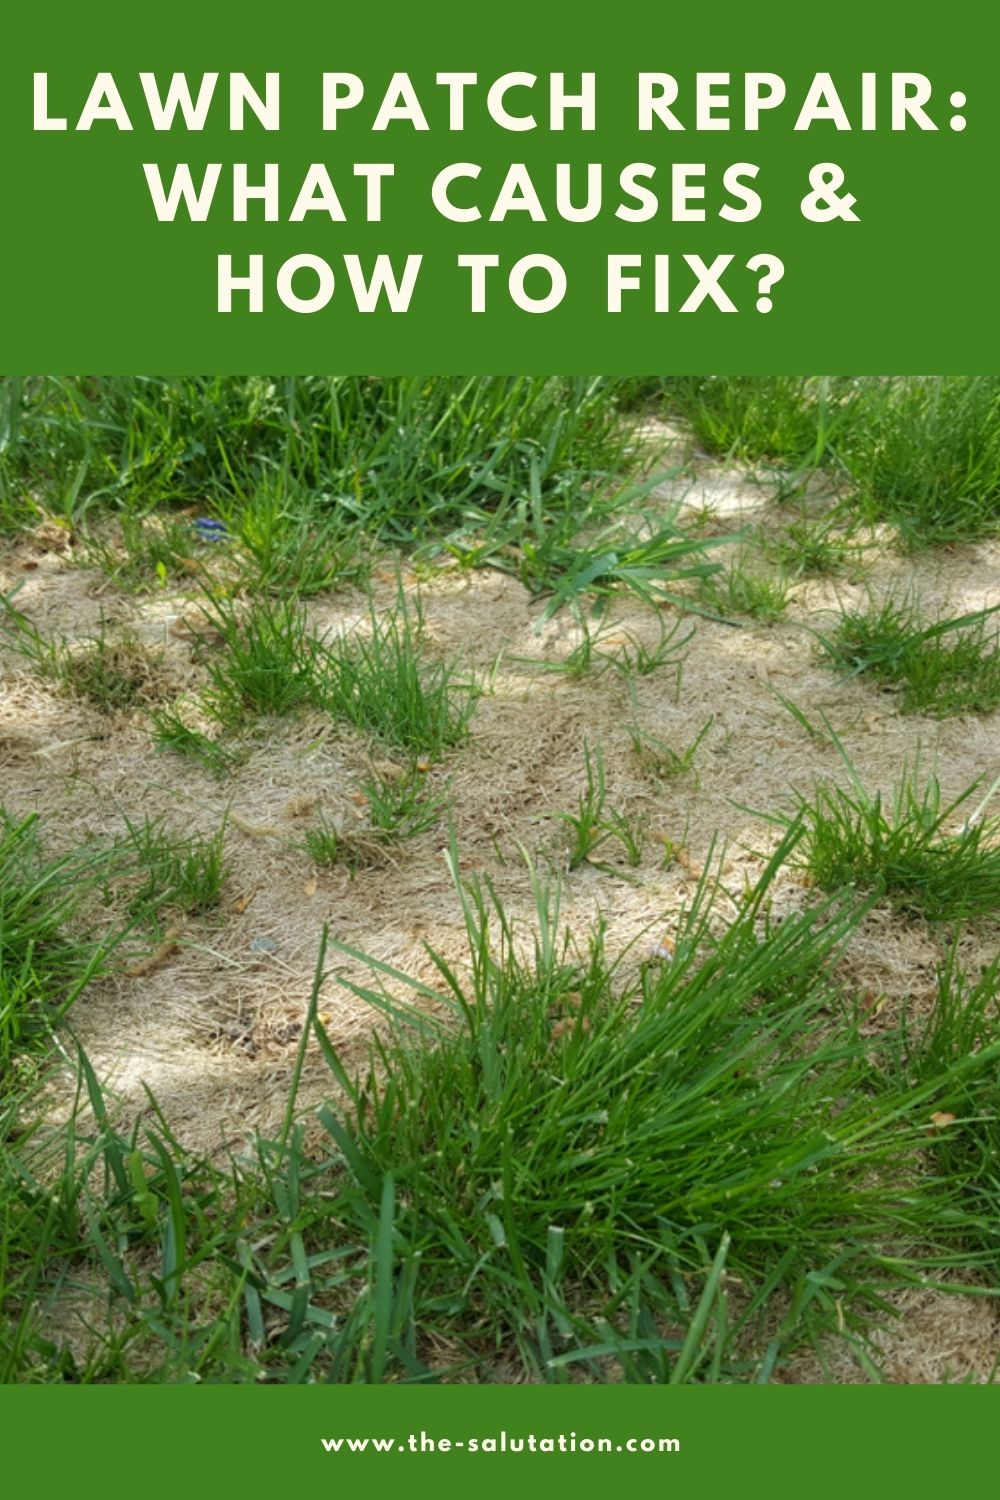 Lawn Patch Repair What Causes & How to Fix 1